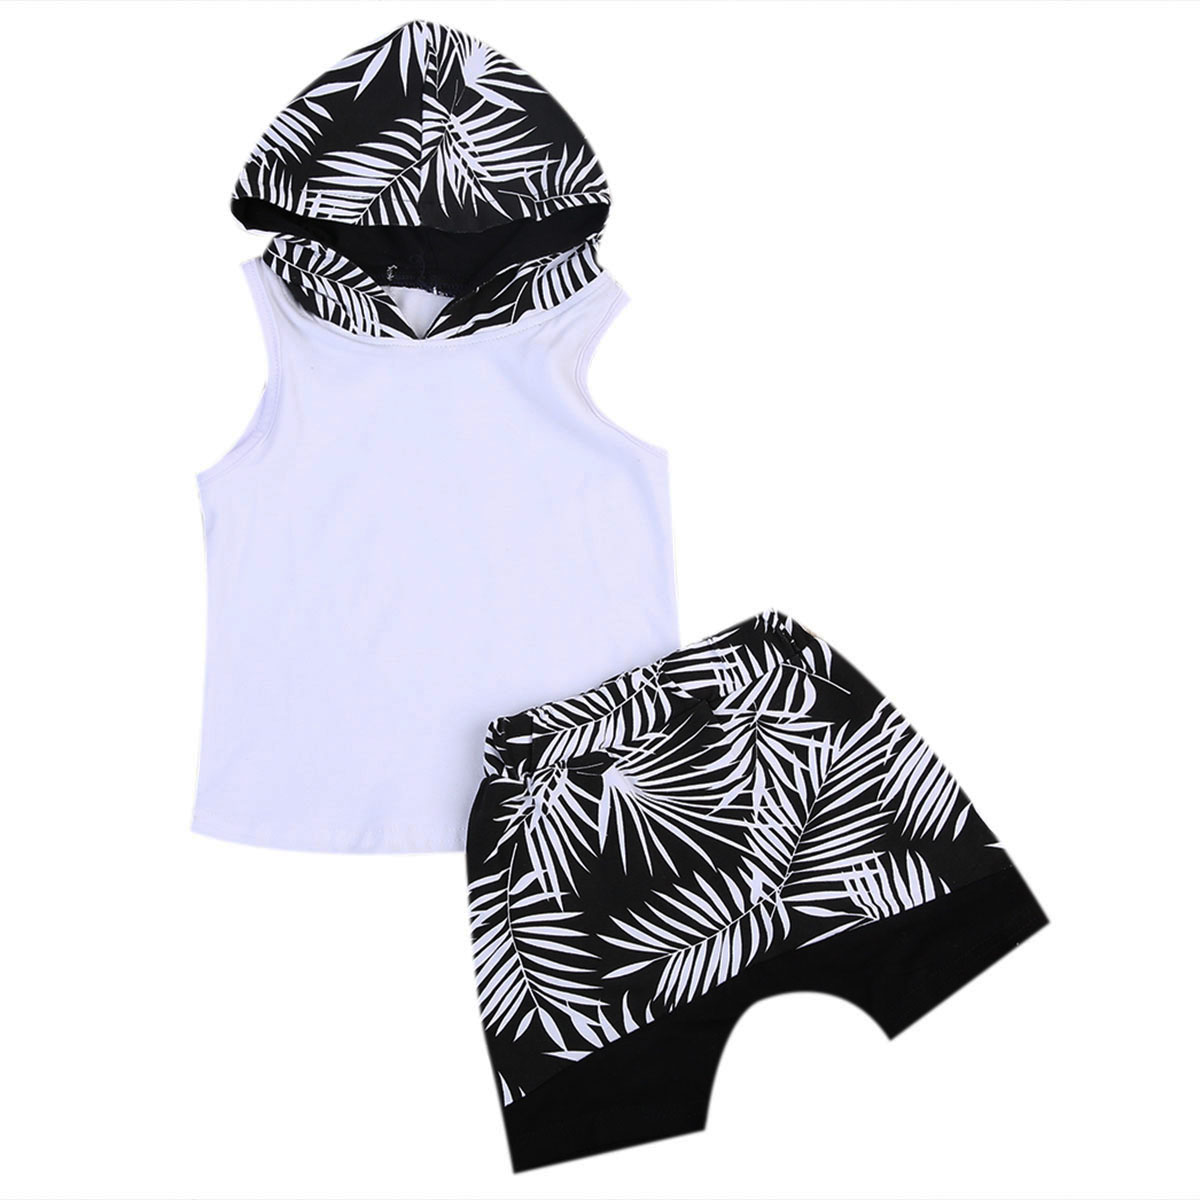 Newborn Kid Baby Boy Clothes Sleeveless Hooded Vest T-Shirt Tops+Shorts 2Pcs sets Kids Girls Summer Cotton Cool Fashion Suits 2016 love kids baby boys summer sleeveless t shirt cotton tops clothes